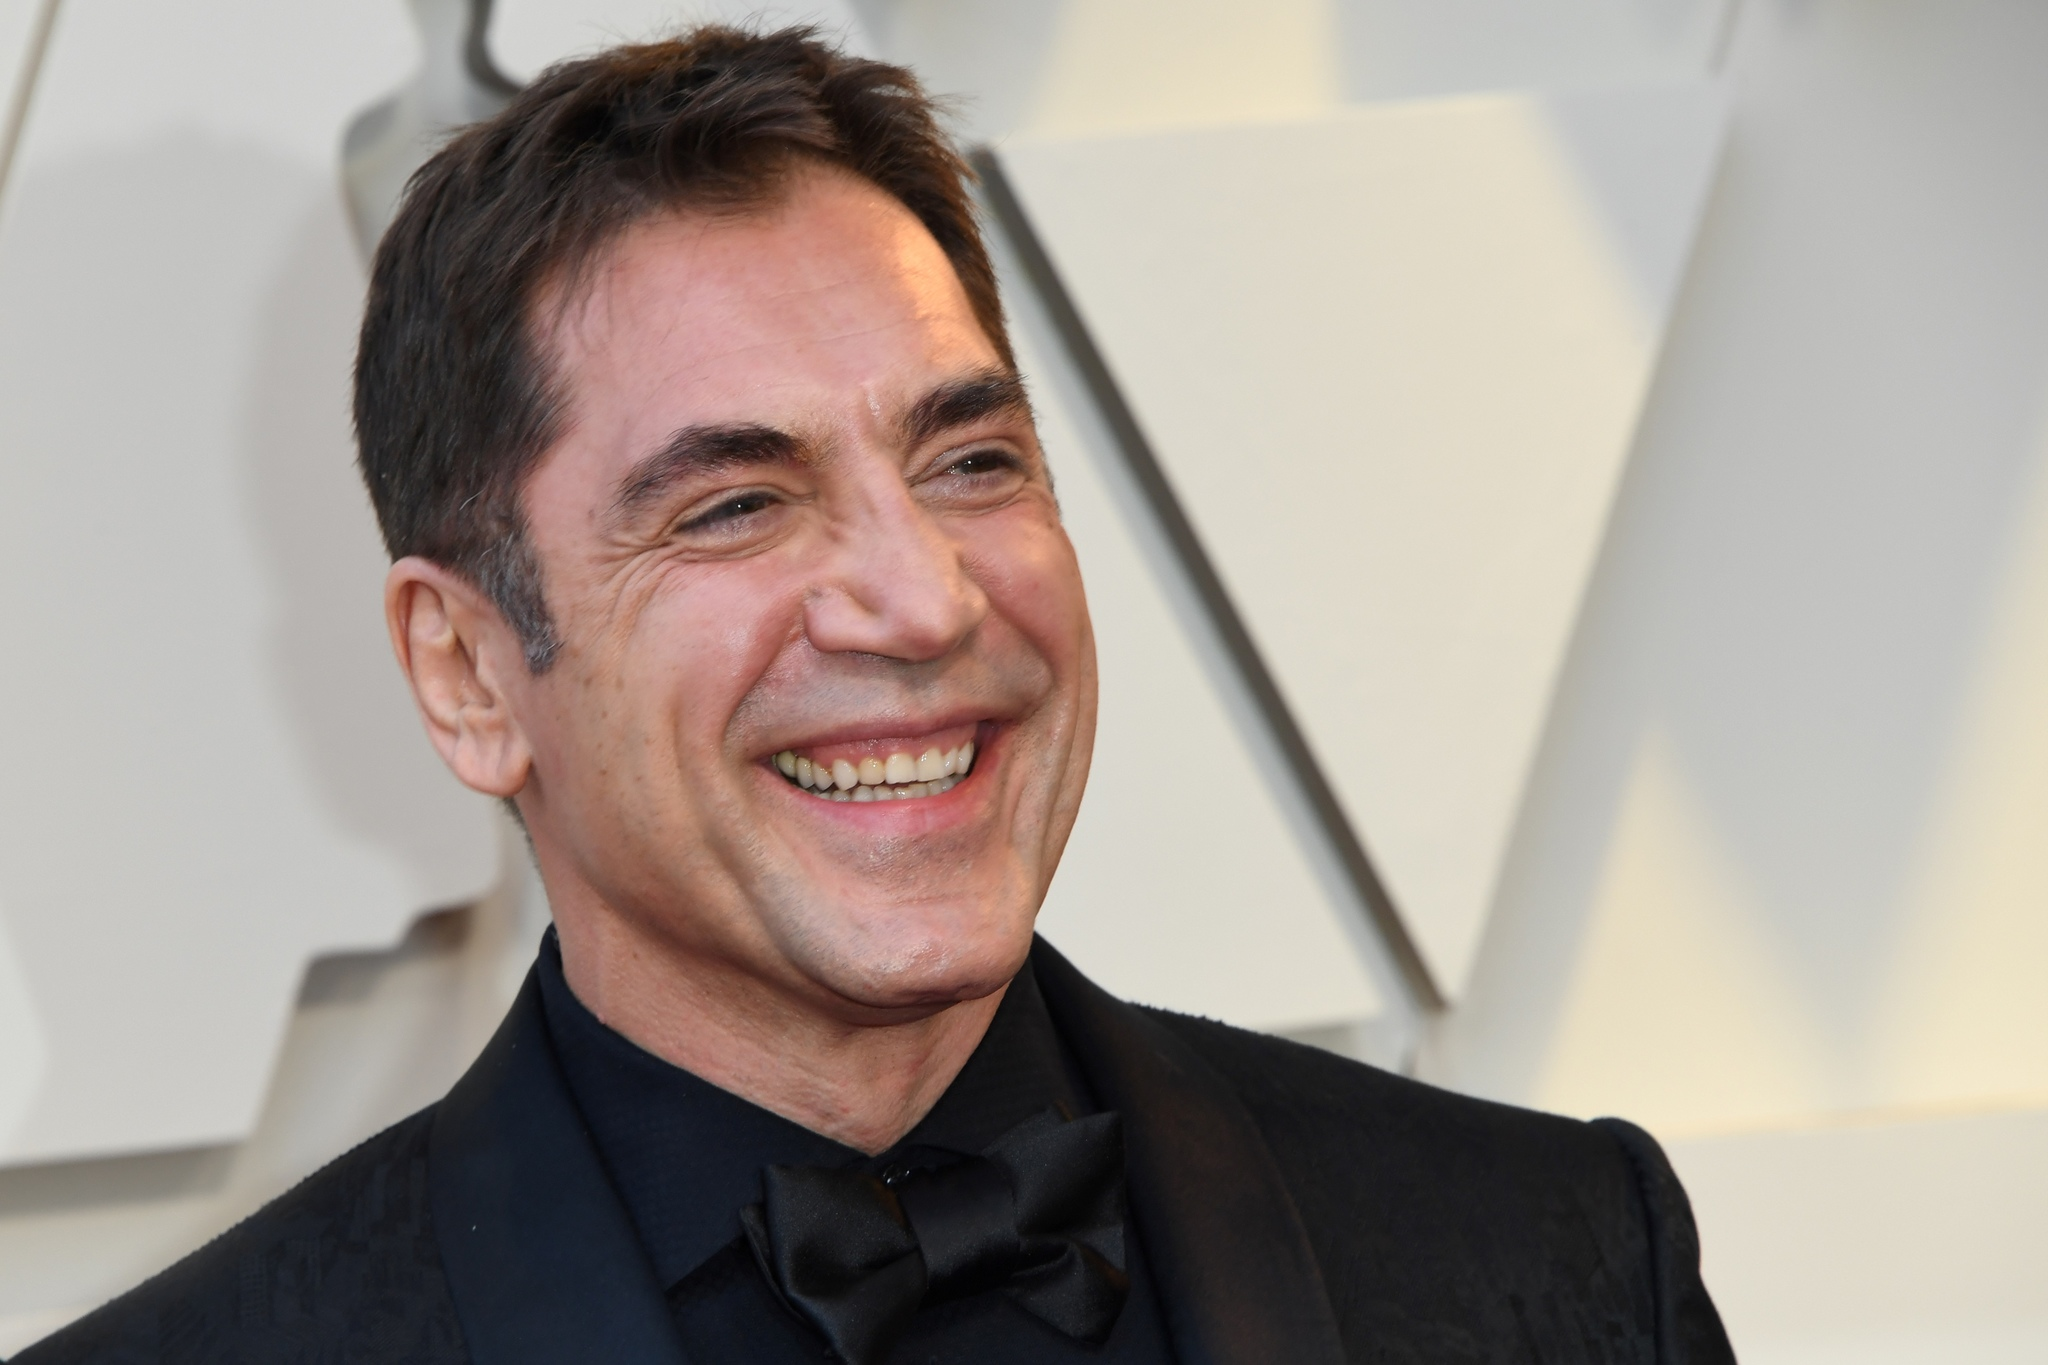 Javier Bardem at an event for The Oscars (2019)